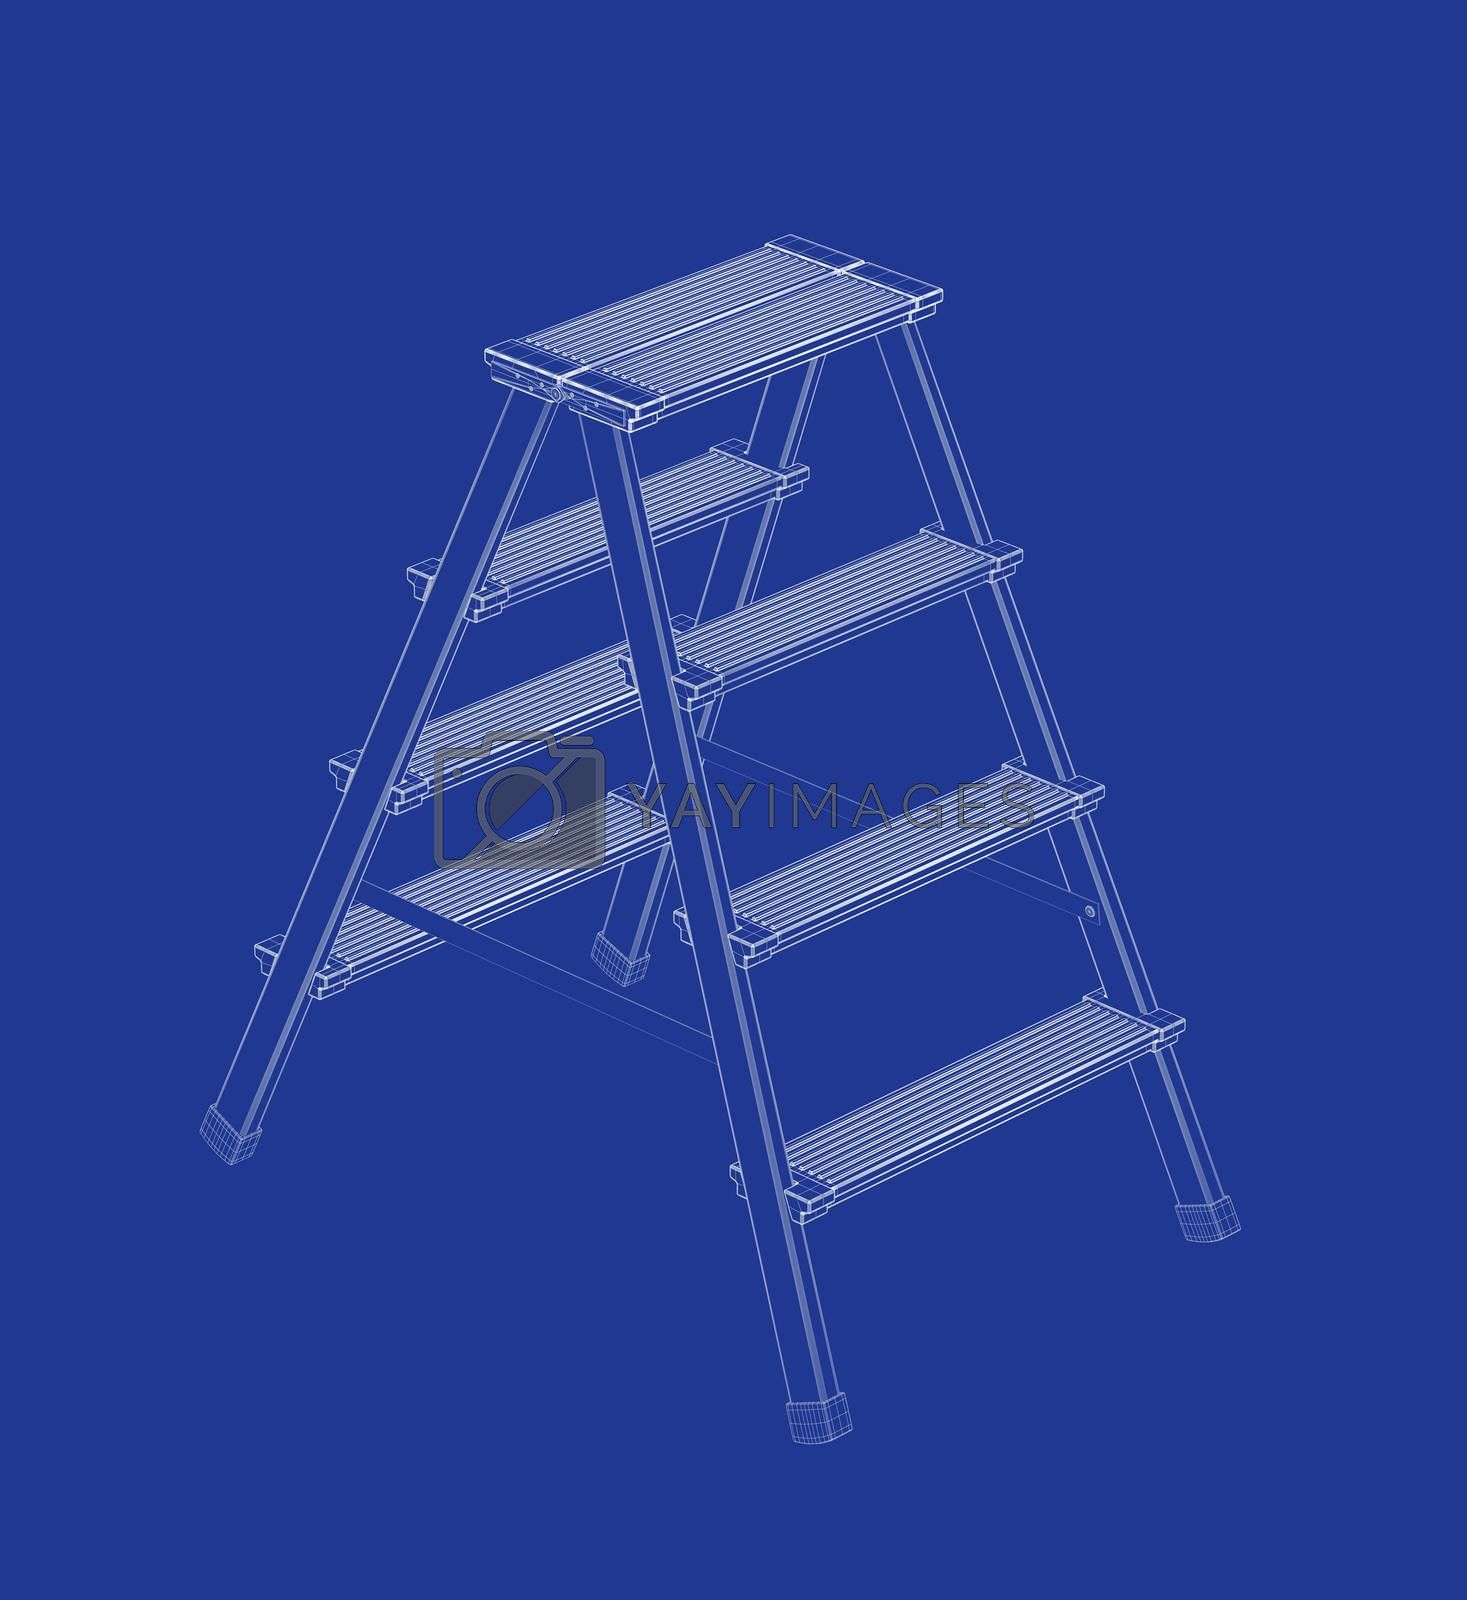 3d wire-frame model of ladder on blue background